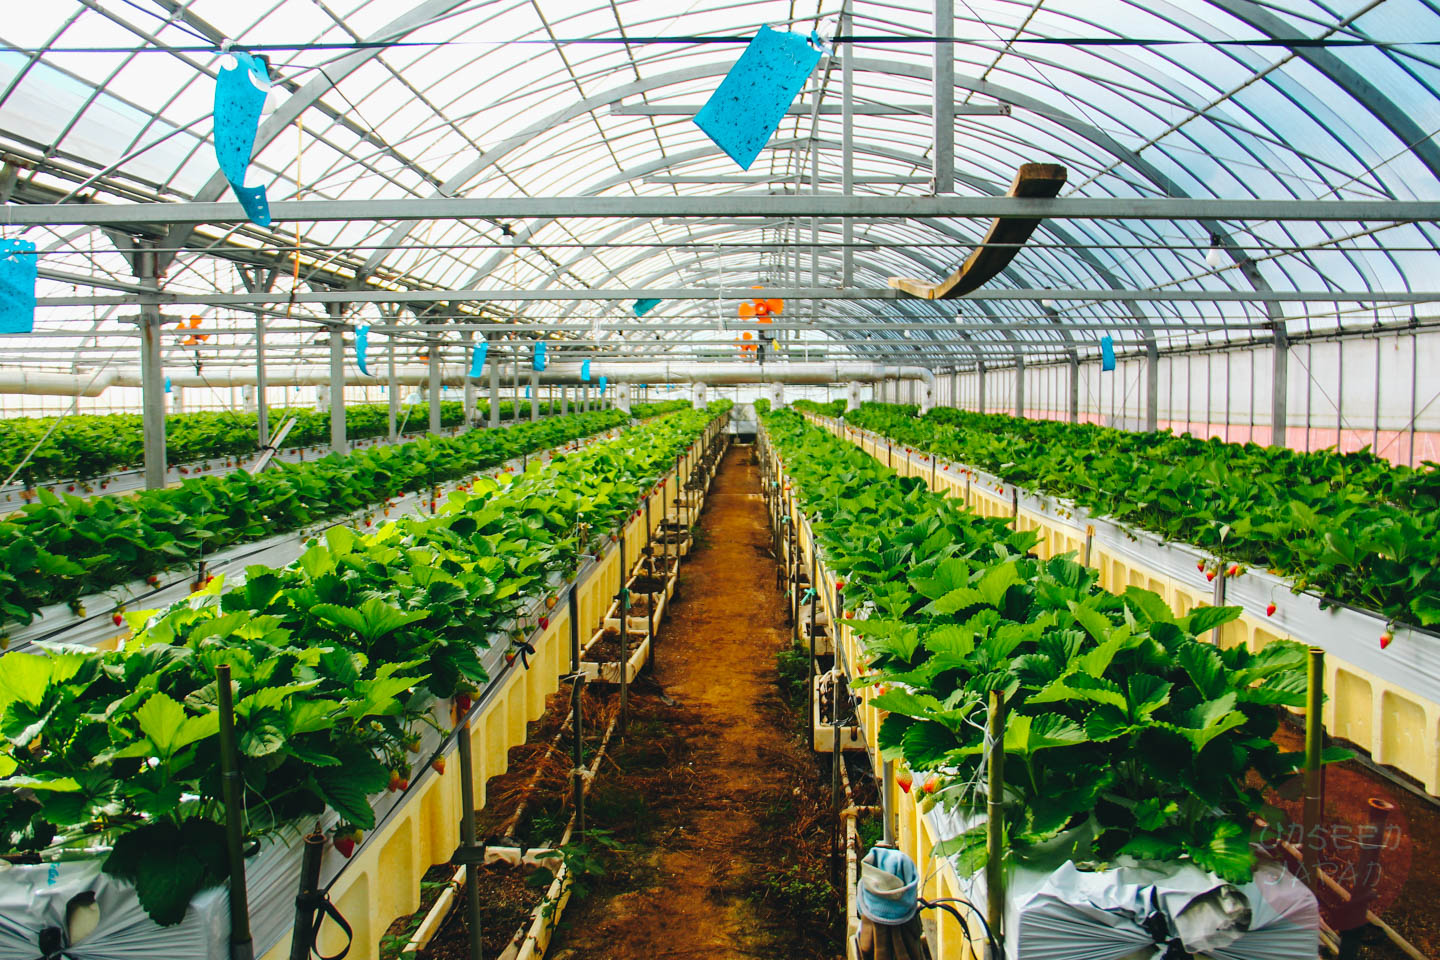 tokushima-strawberry-farm-in-greenhouse